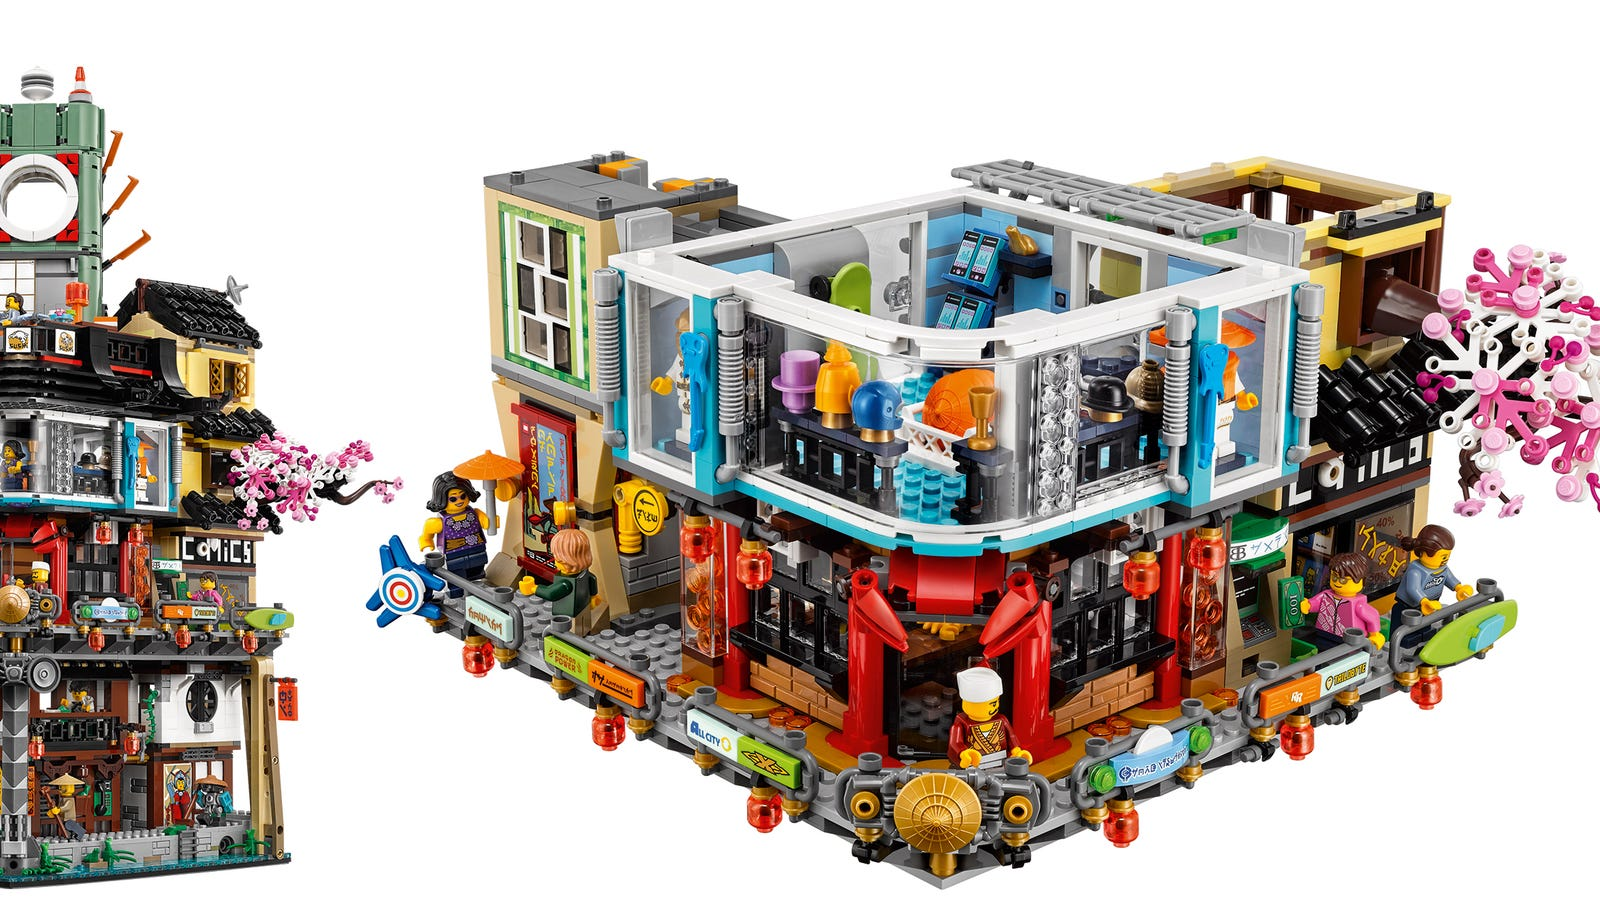 You Could Almost Live Inside Lego's Massive New Ninjago City Set